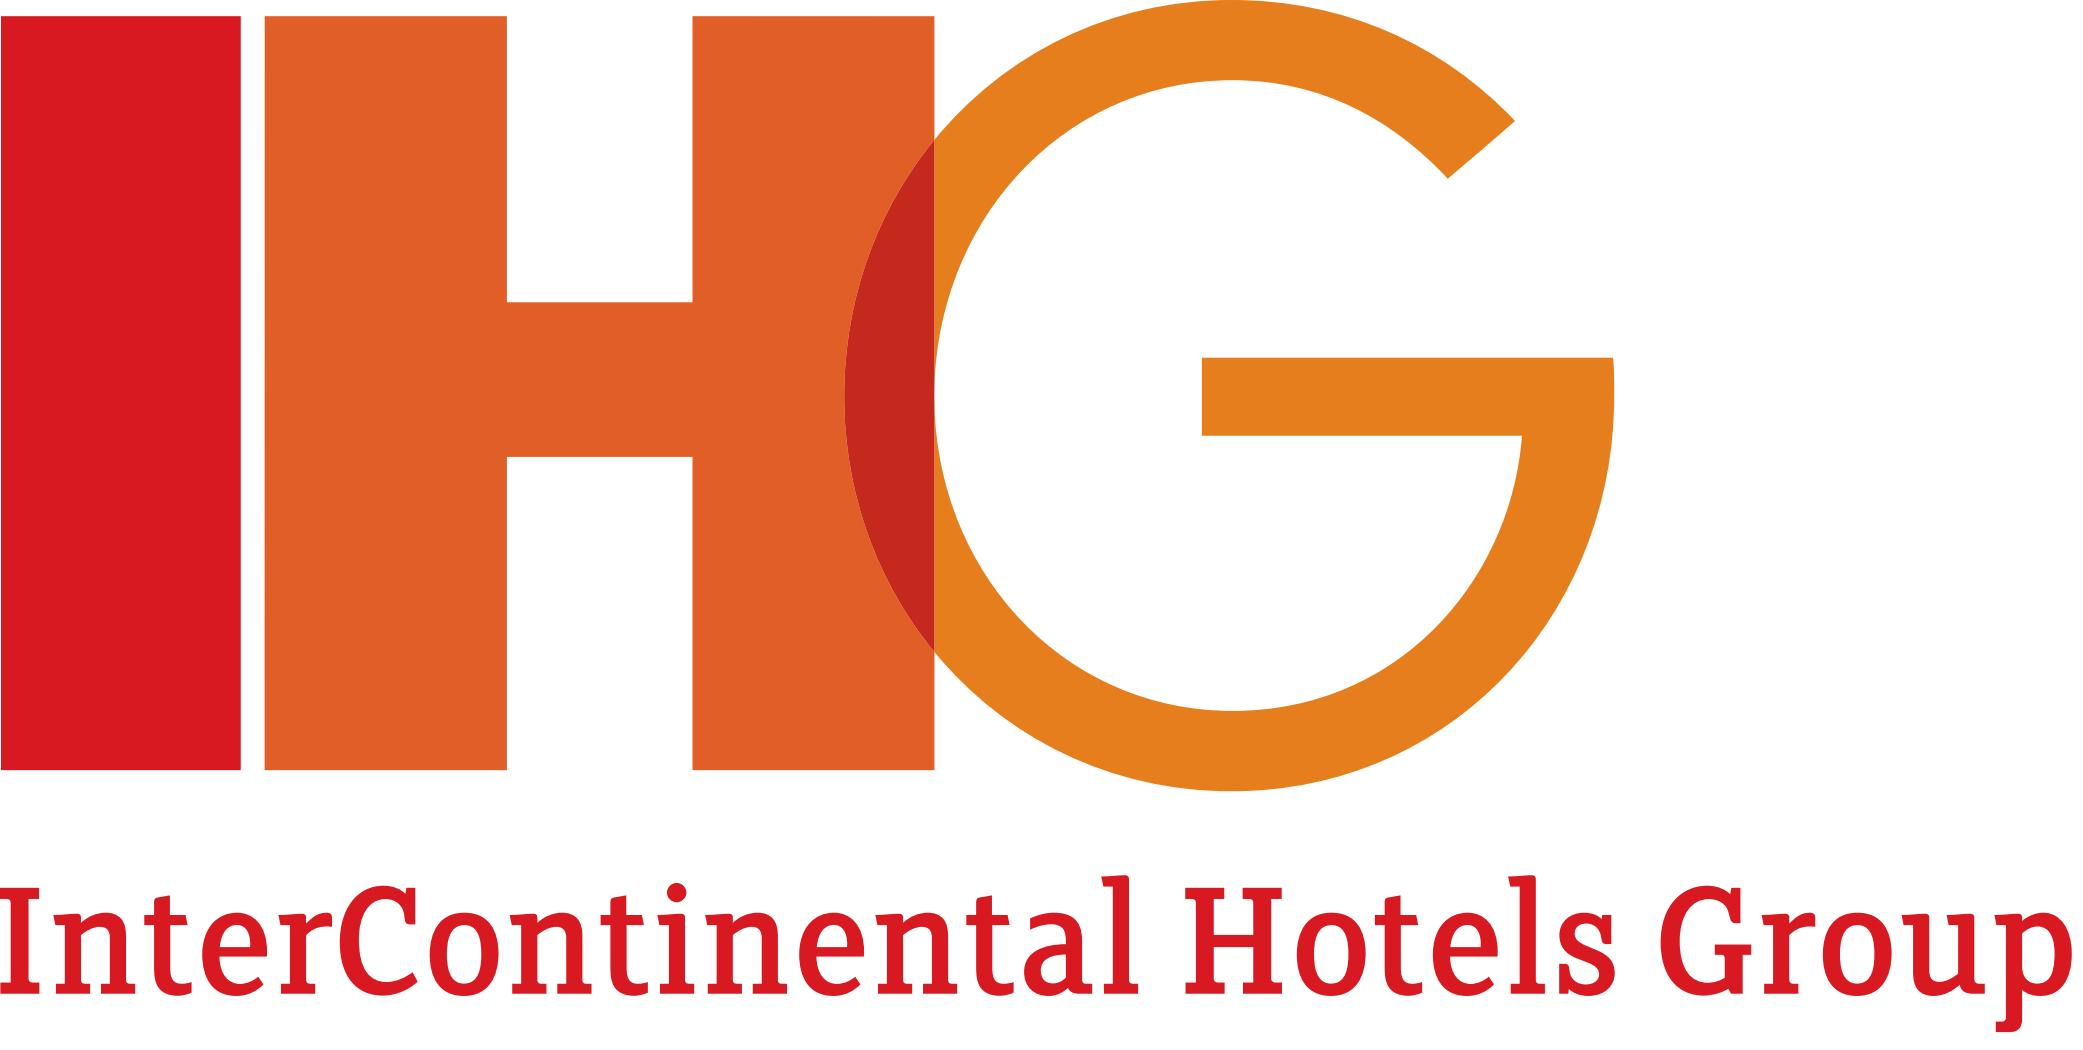 InterContinental_Hotels_Group-logo.jpg